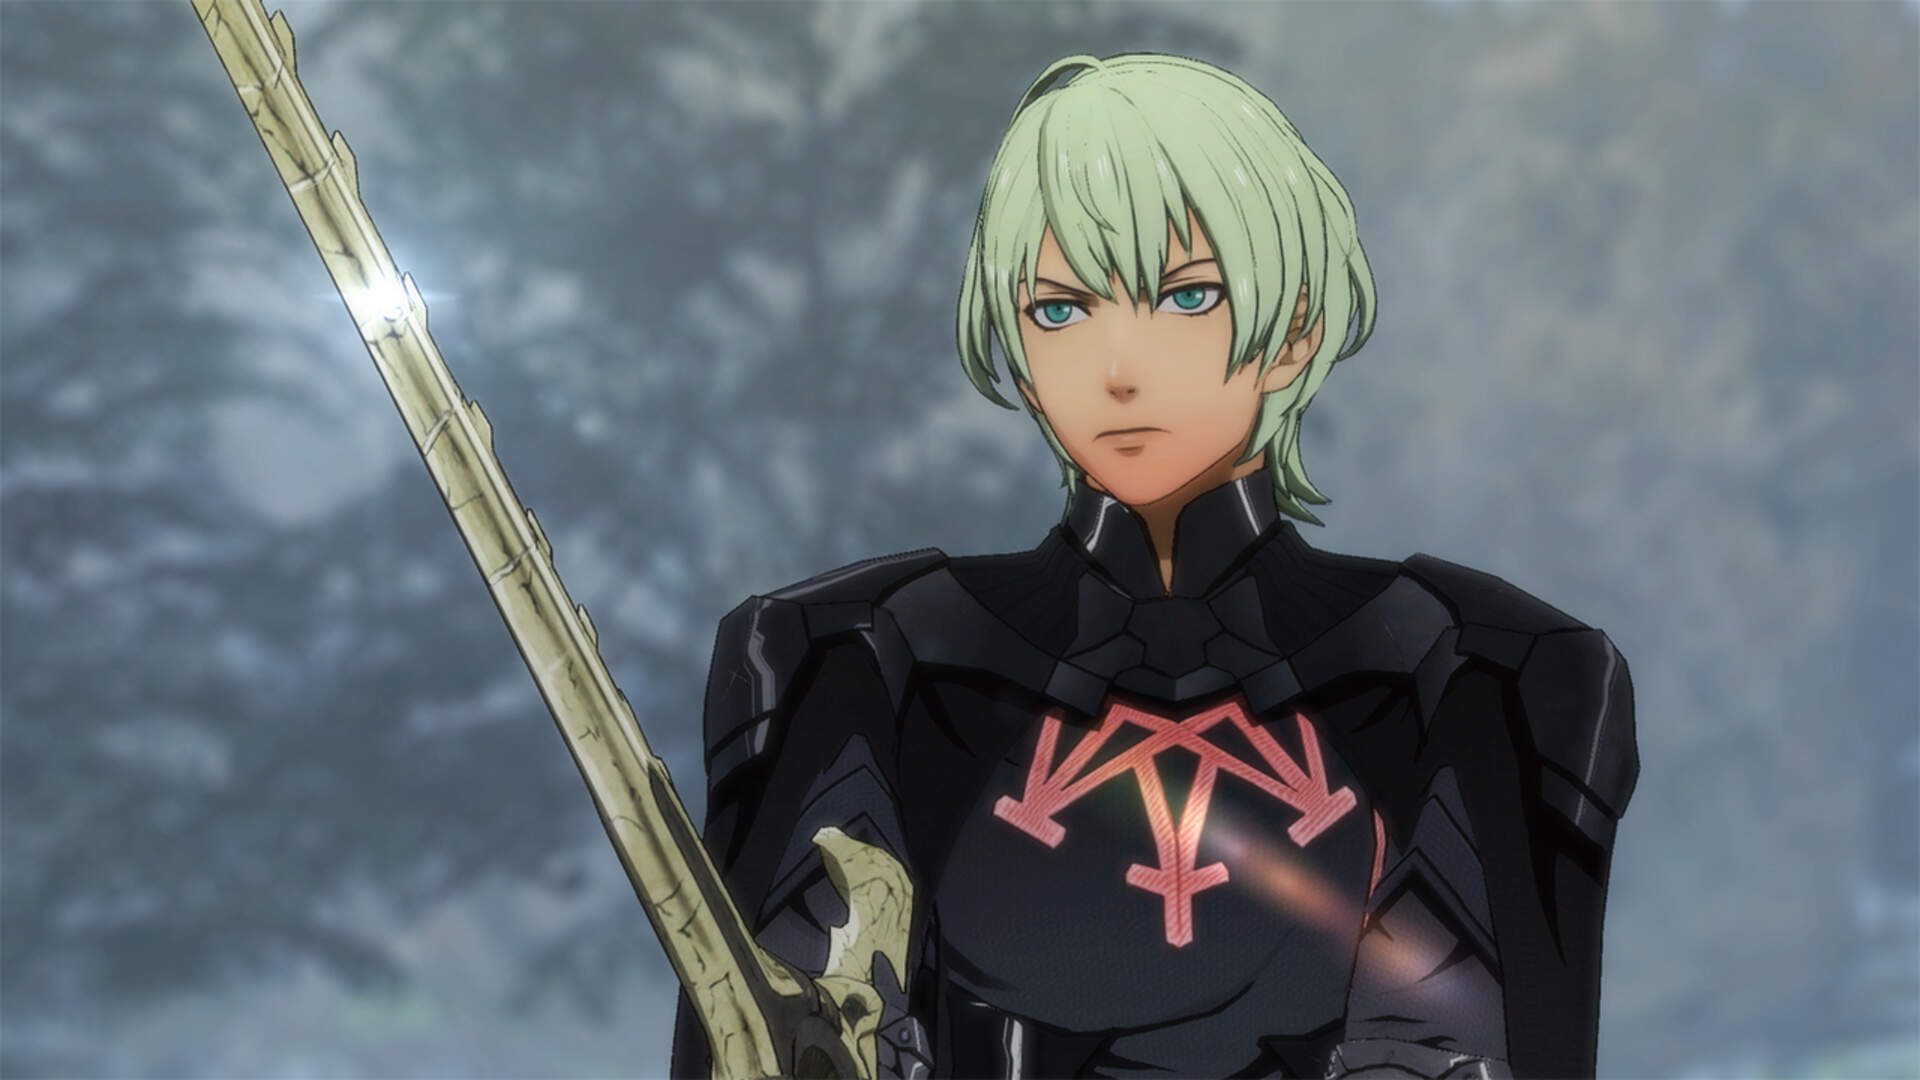 Fire Emblem Three Houses Release Date, Characters, Gameplay - Everything We Know